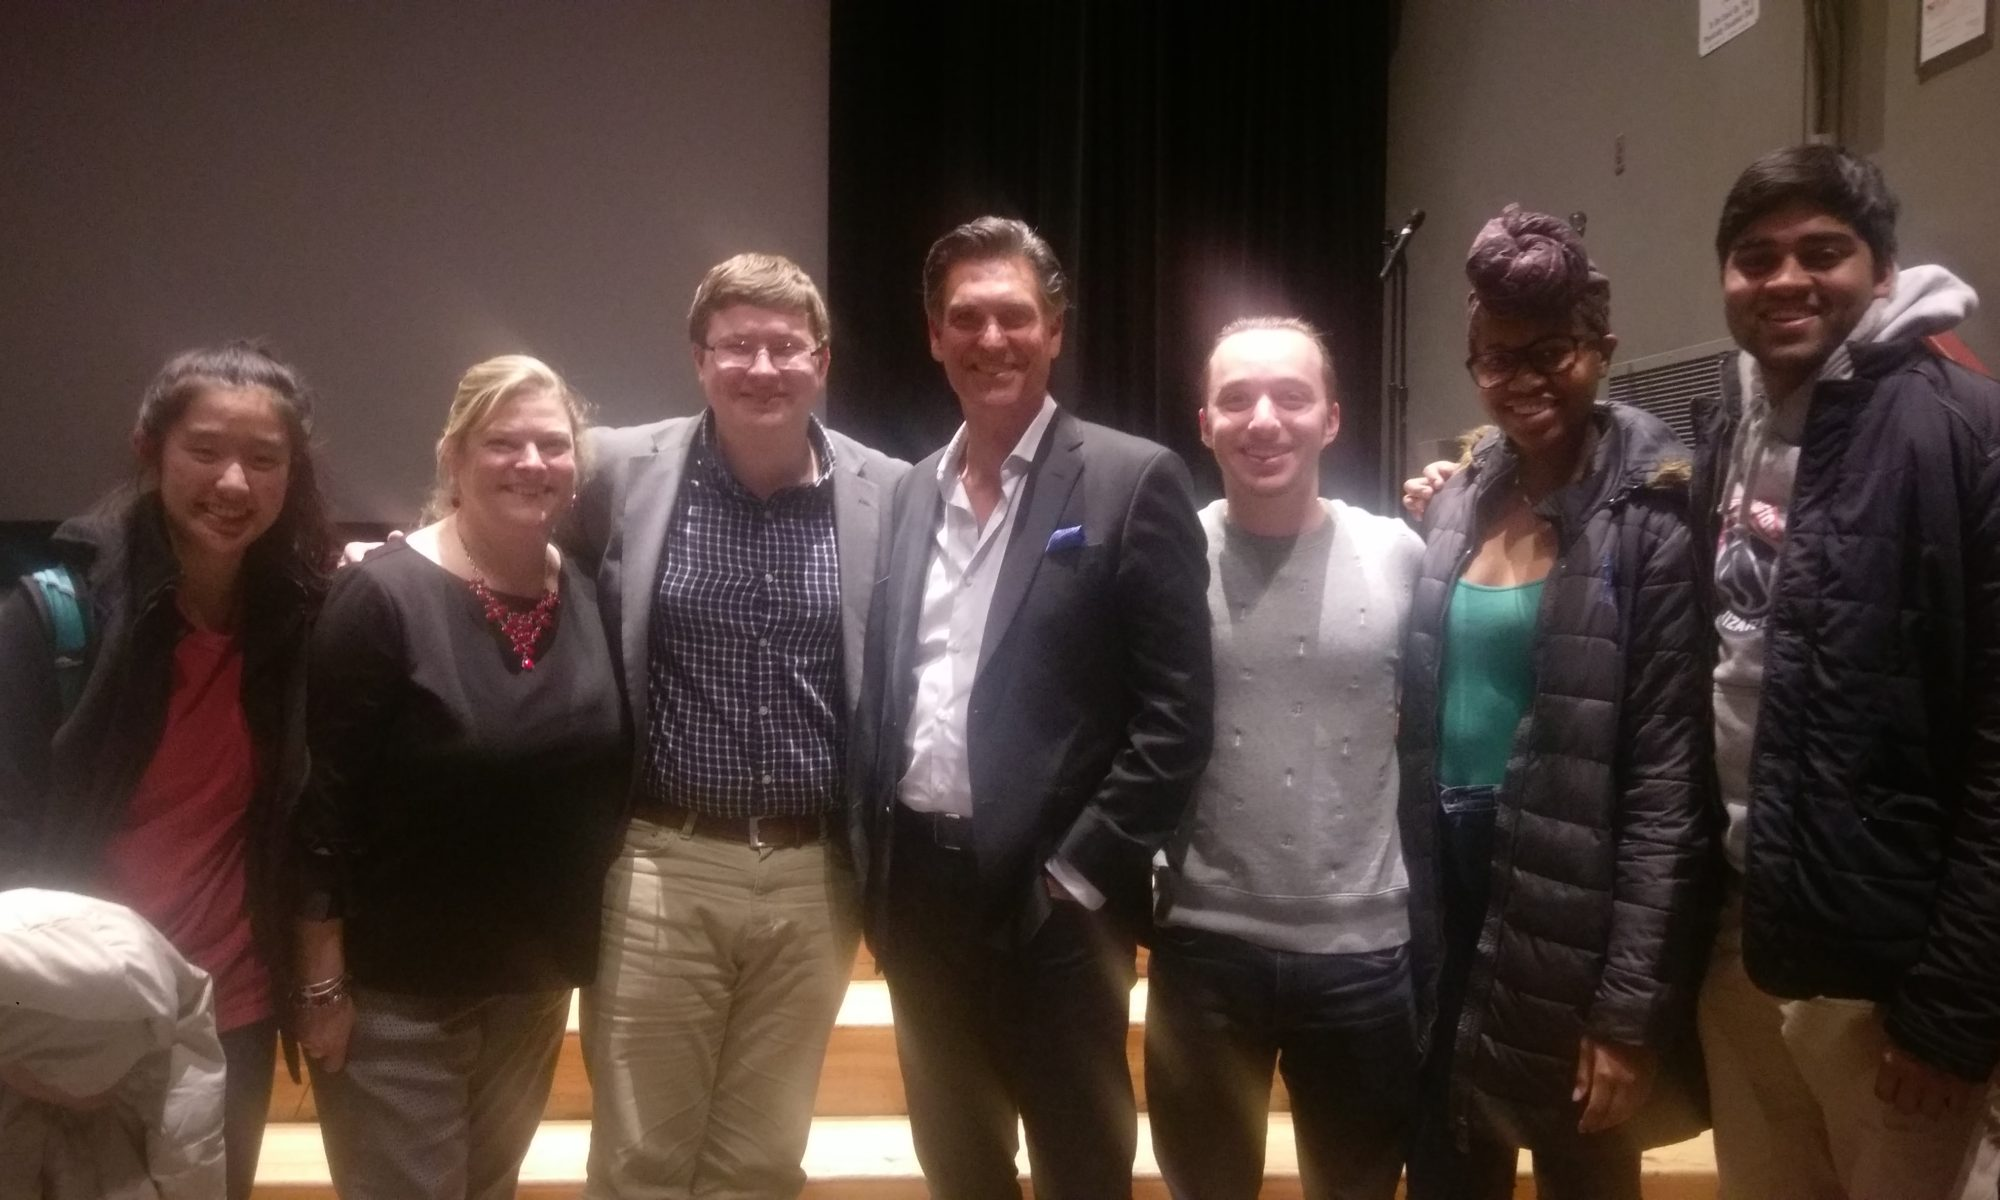 UMD alumnus and ODKer, Mark Ciardi, meets with the ODK exec board following the advance screening of Chappaquiddick